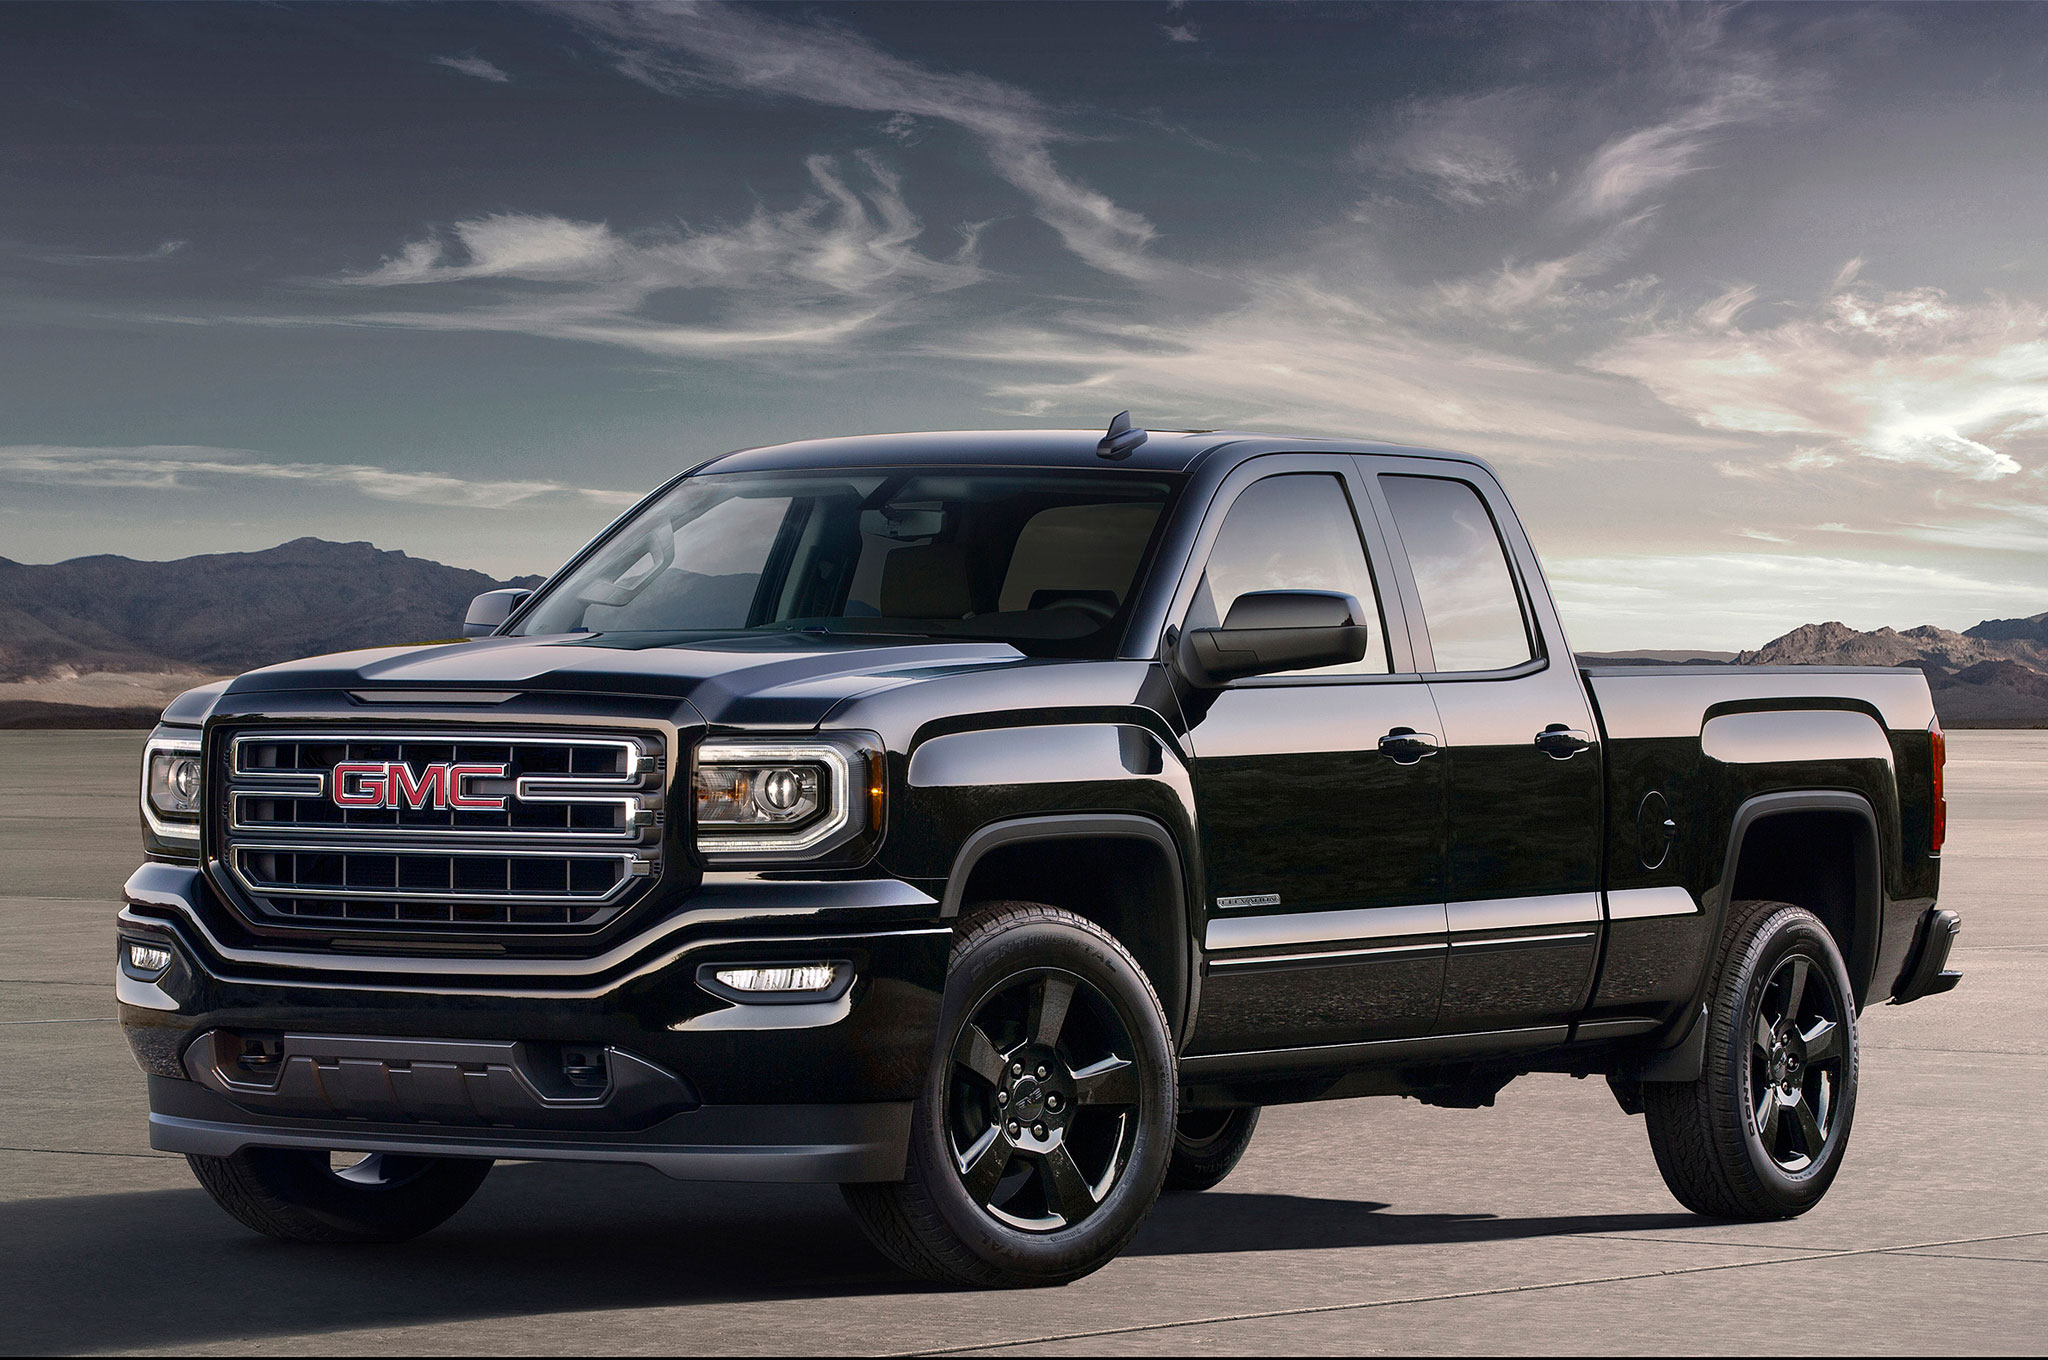 Analysts Warn of Detroit's Over-Reliance on Truck Sales ...